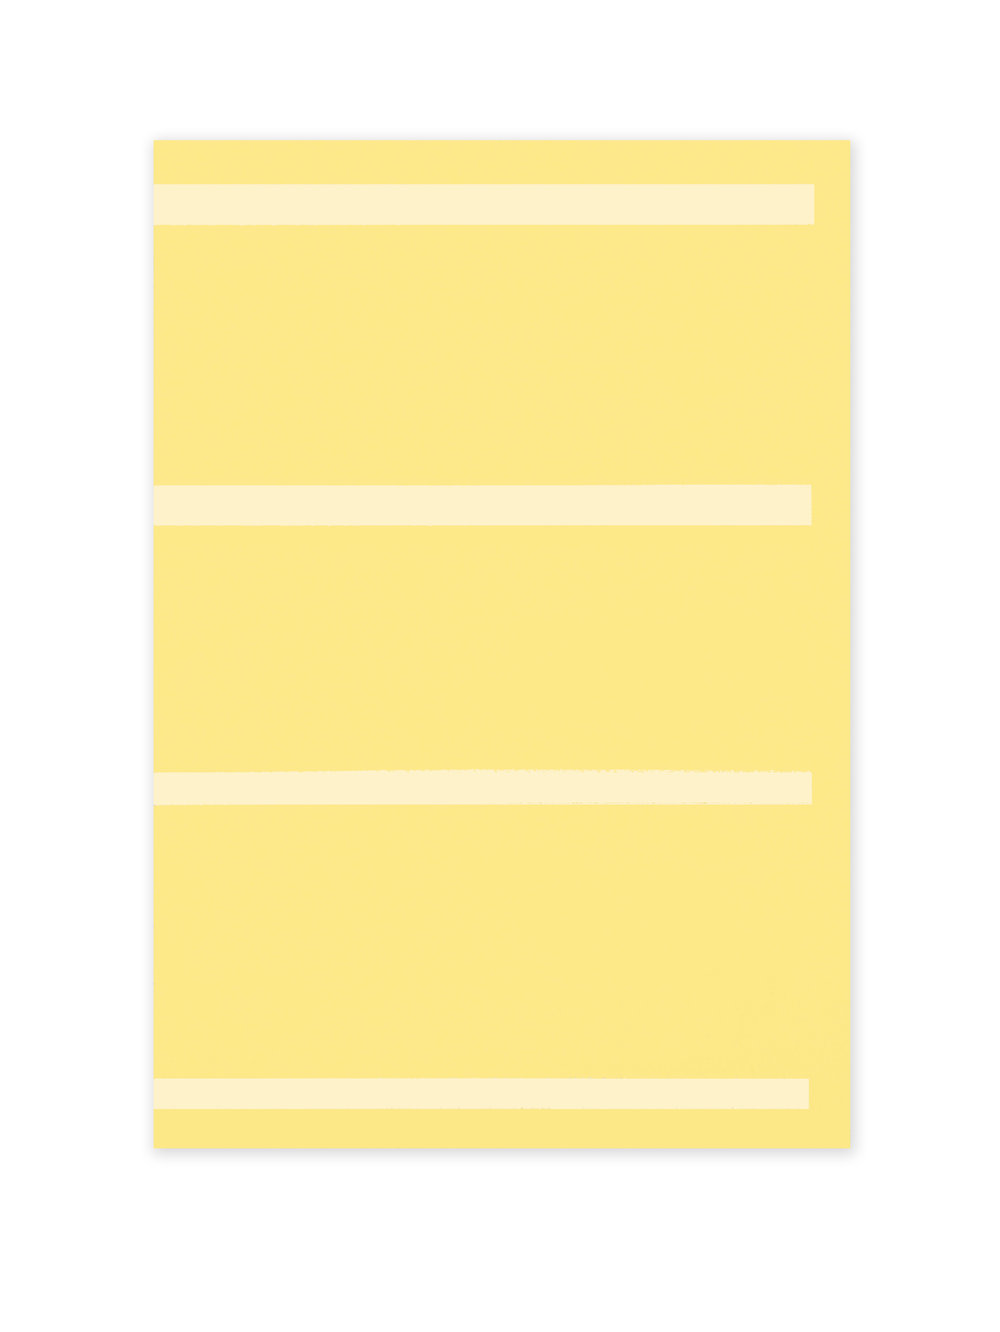 Lined Space Yellow